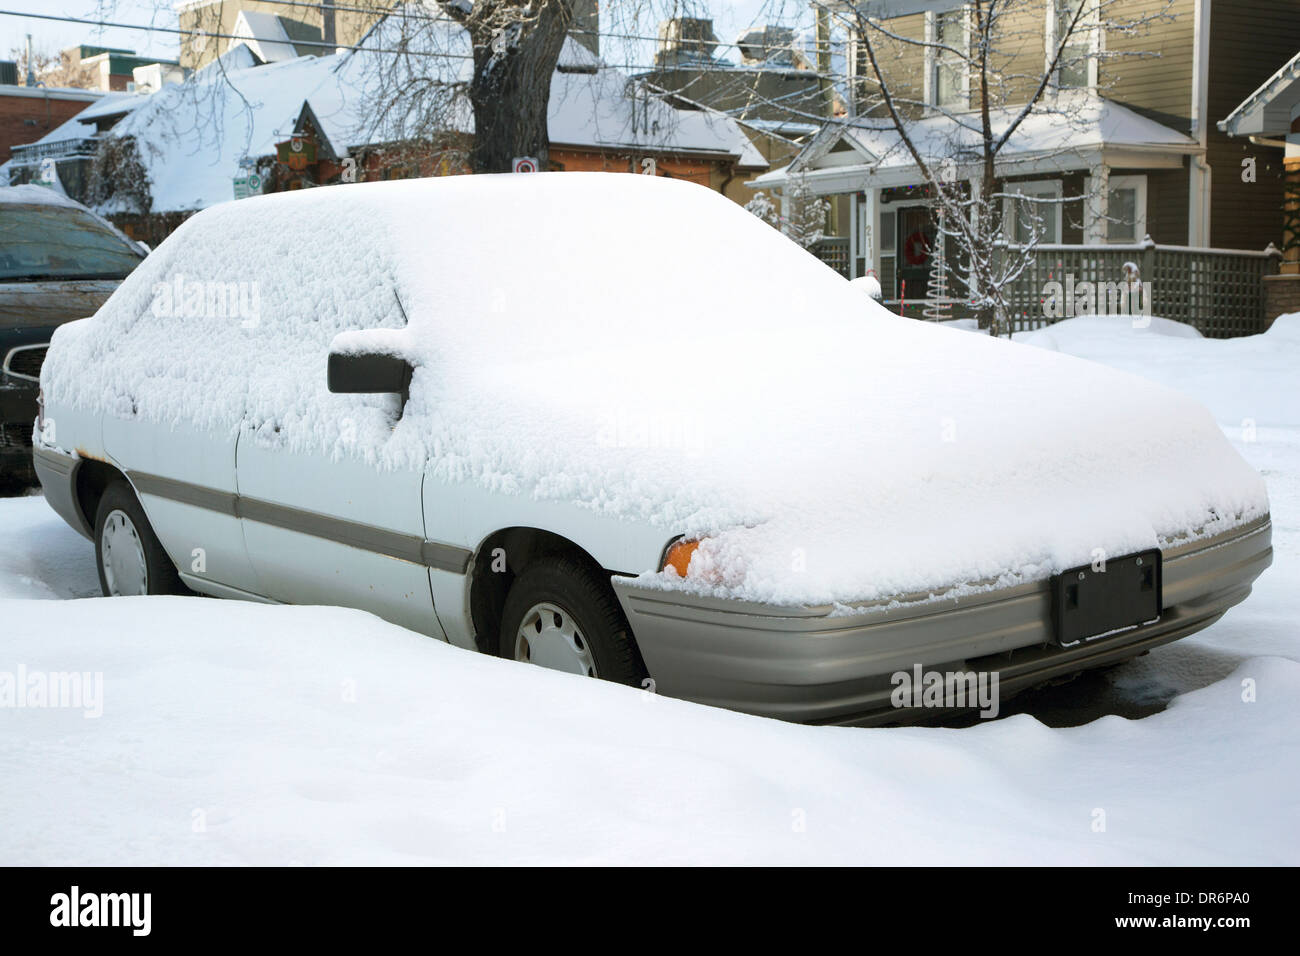 Car covered in snow on residential street - Stock Image